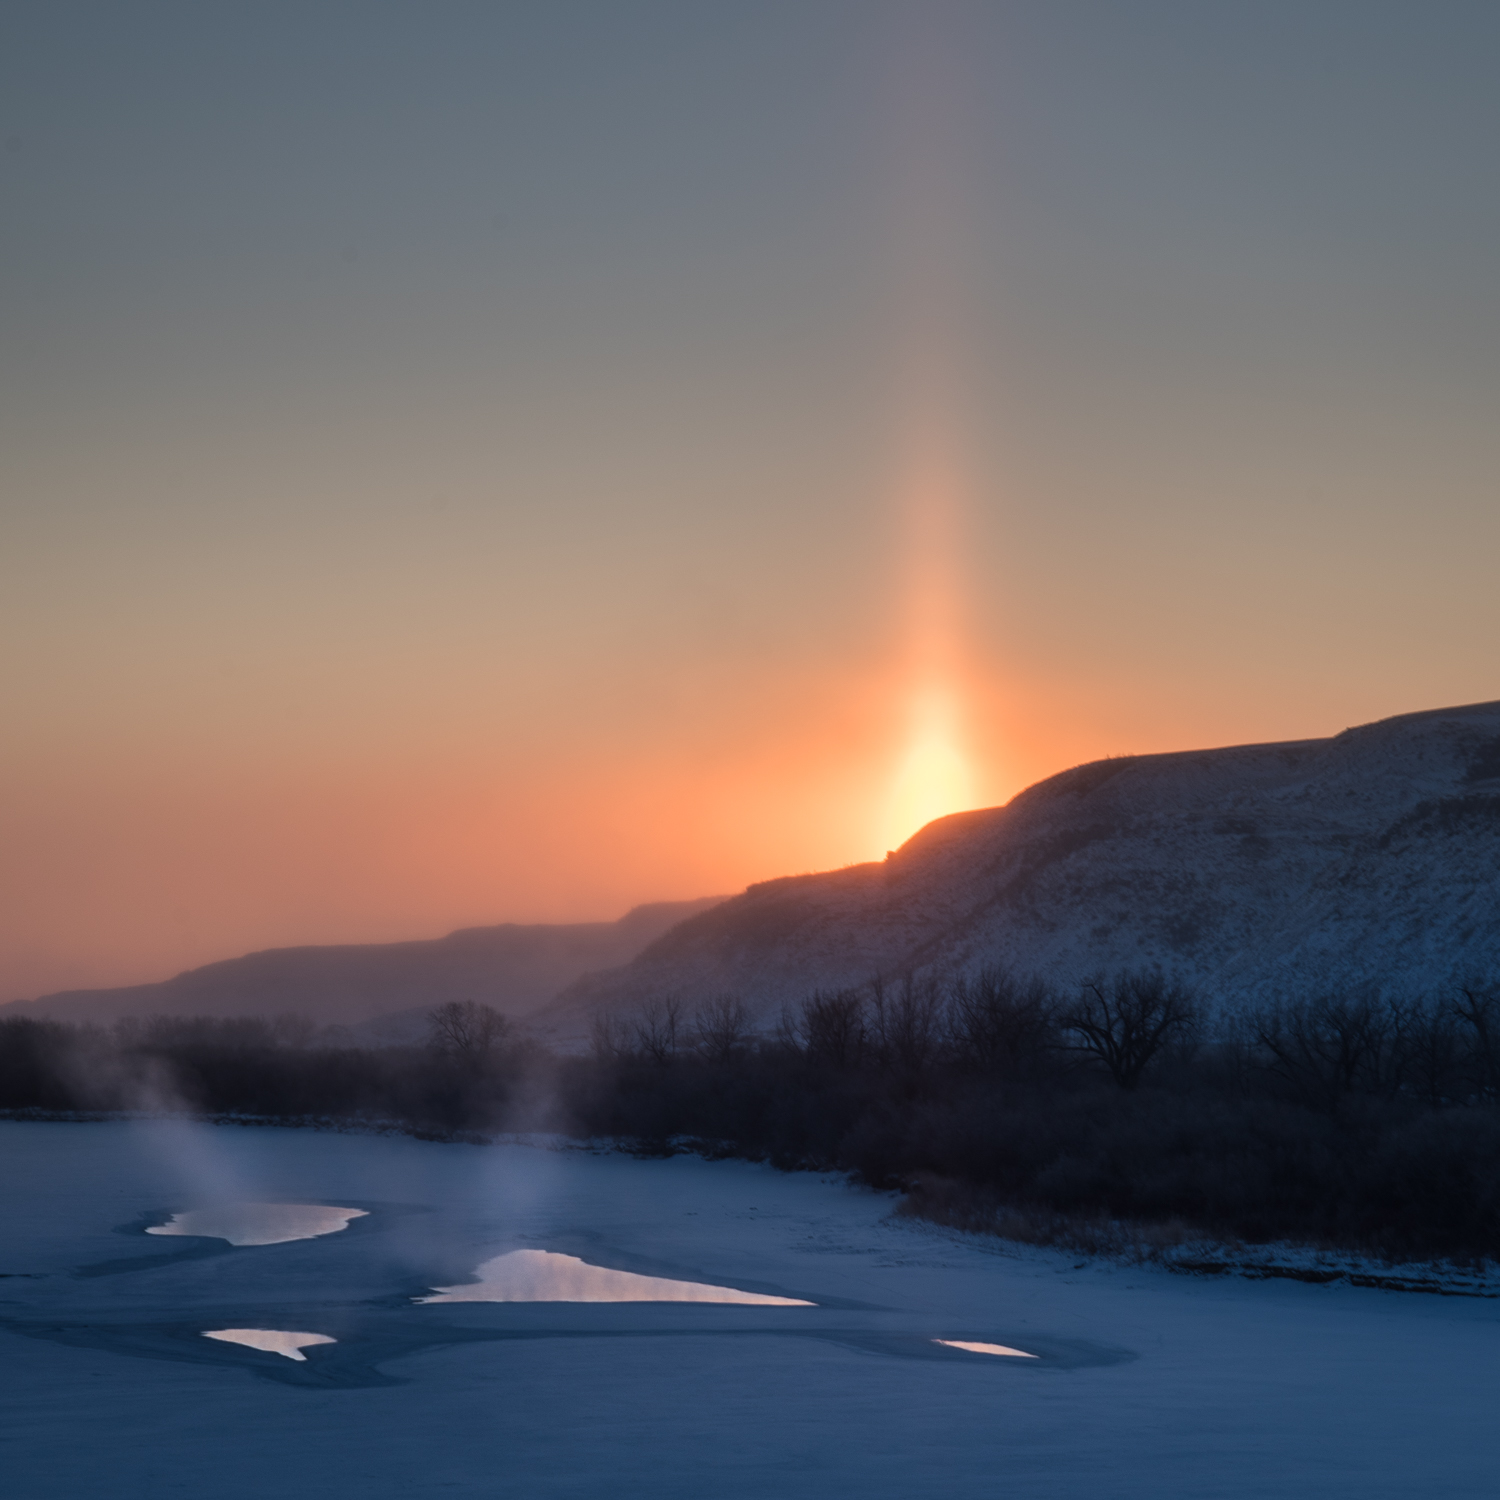 Sun pillar, early on the very coldest day of my trip.